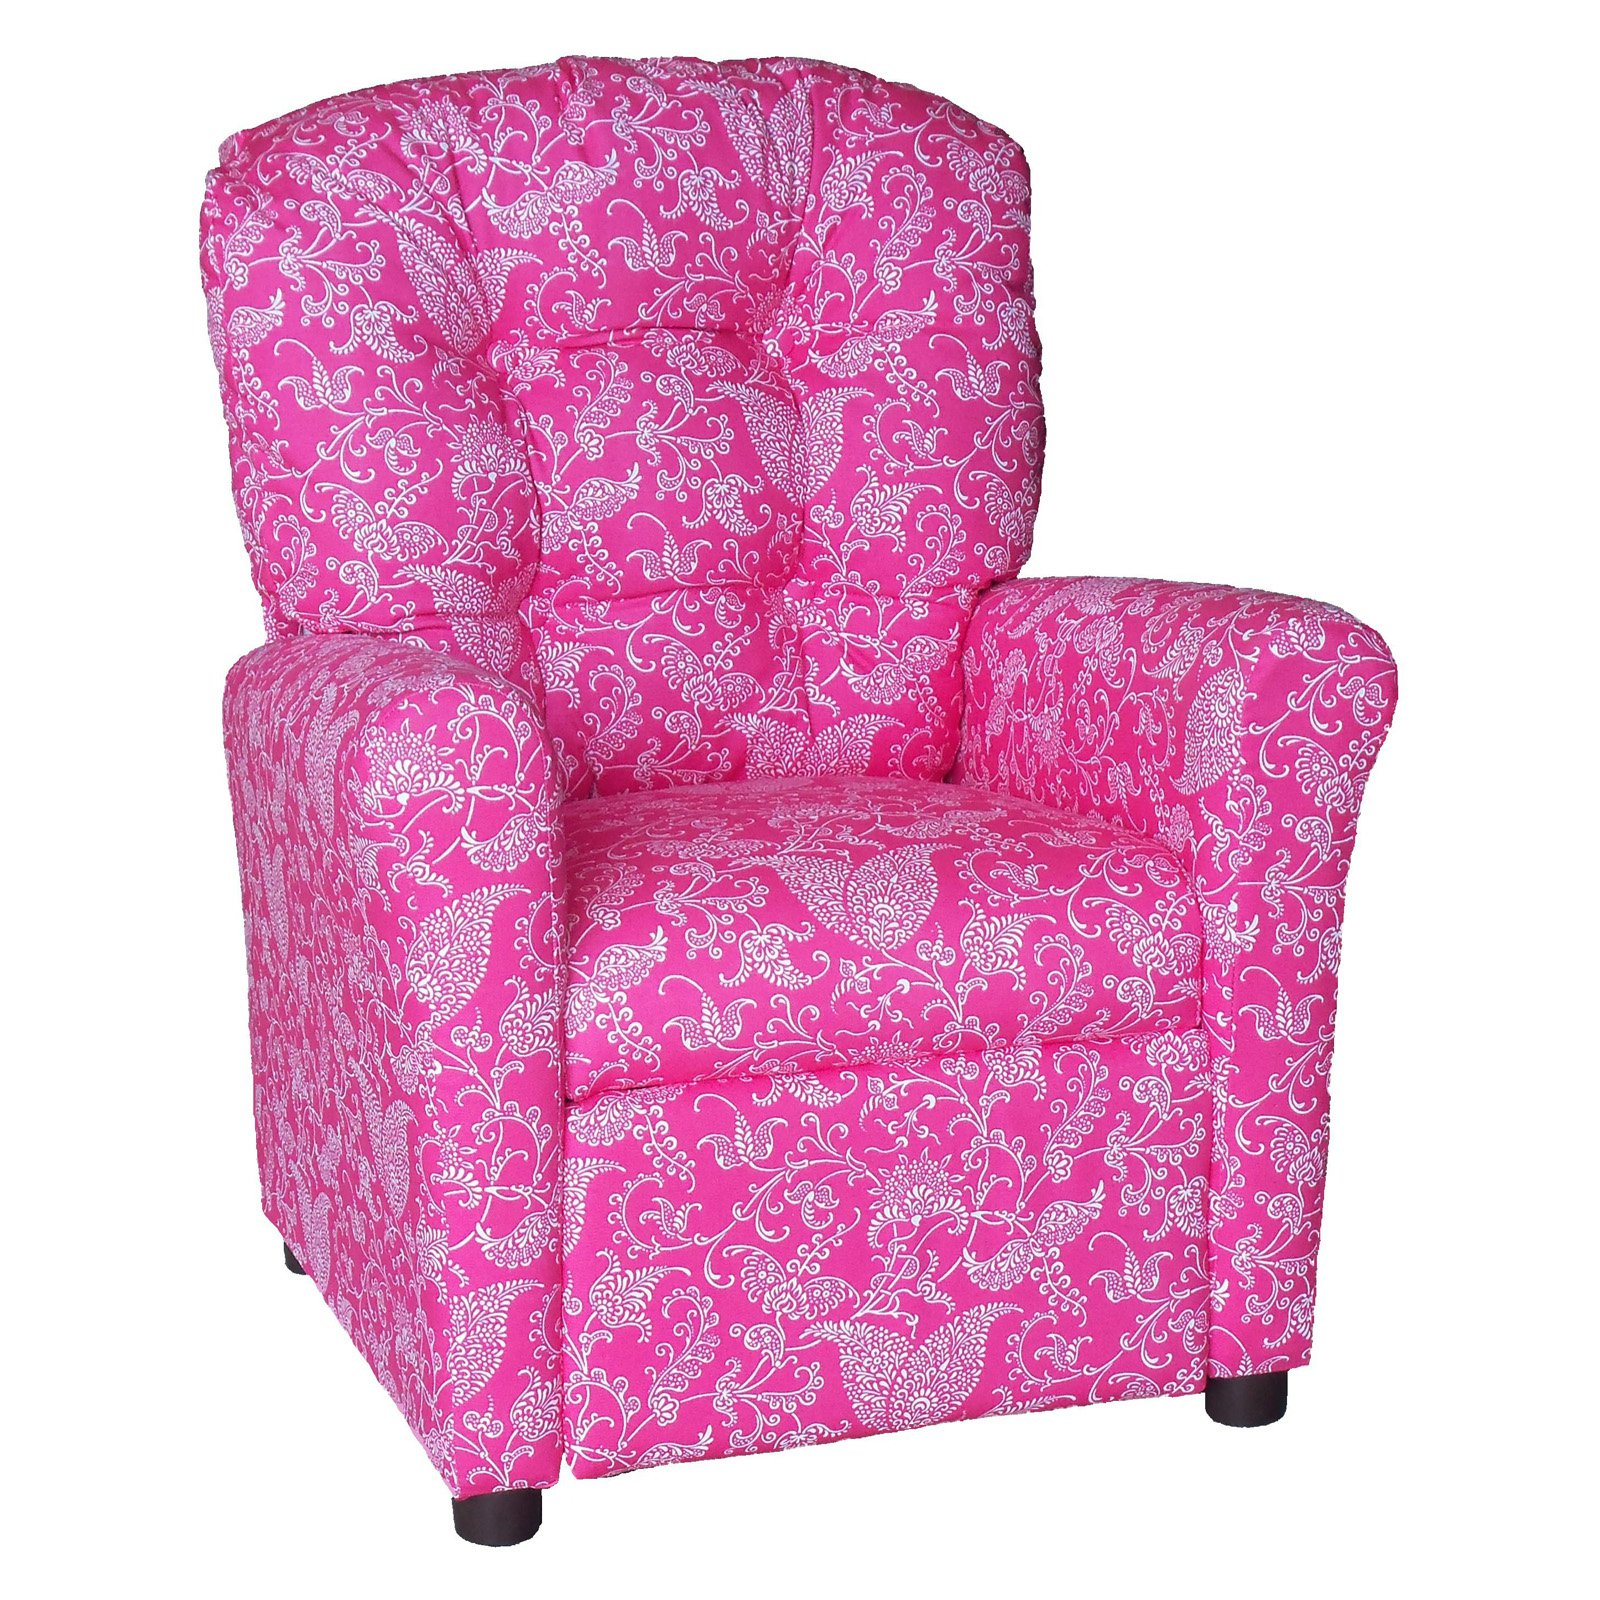 Brazil Furniture 4-Button Back Childrens Recliner - Small Paisley Pink